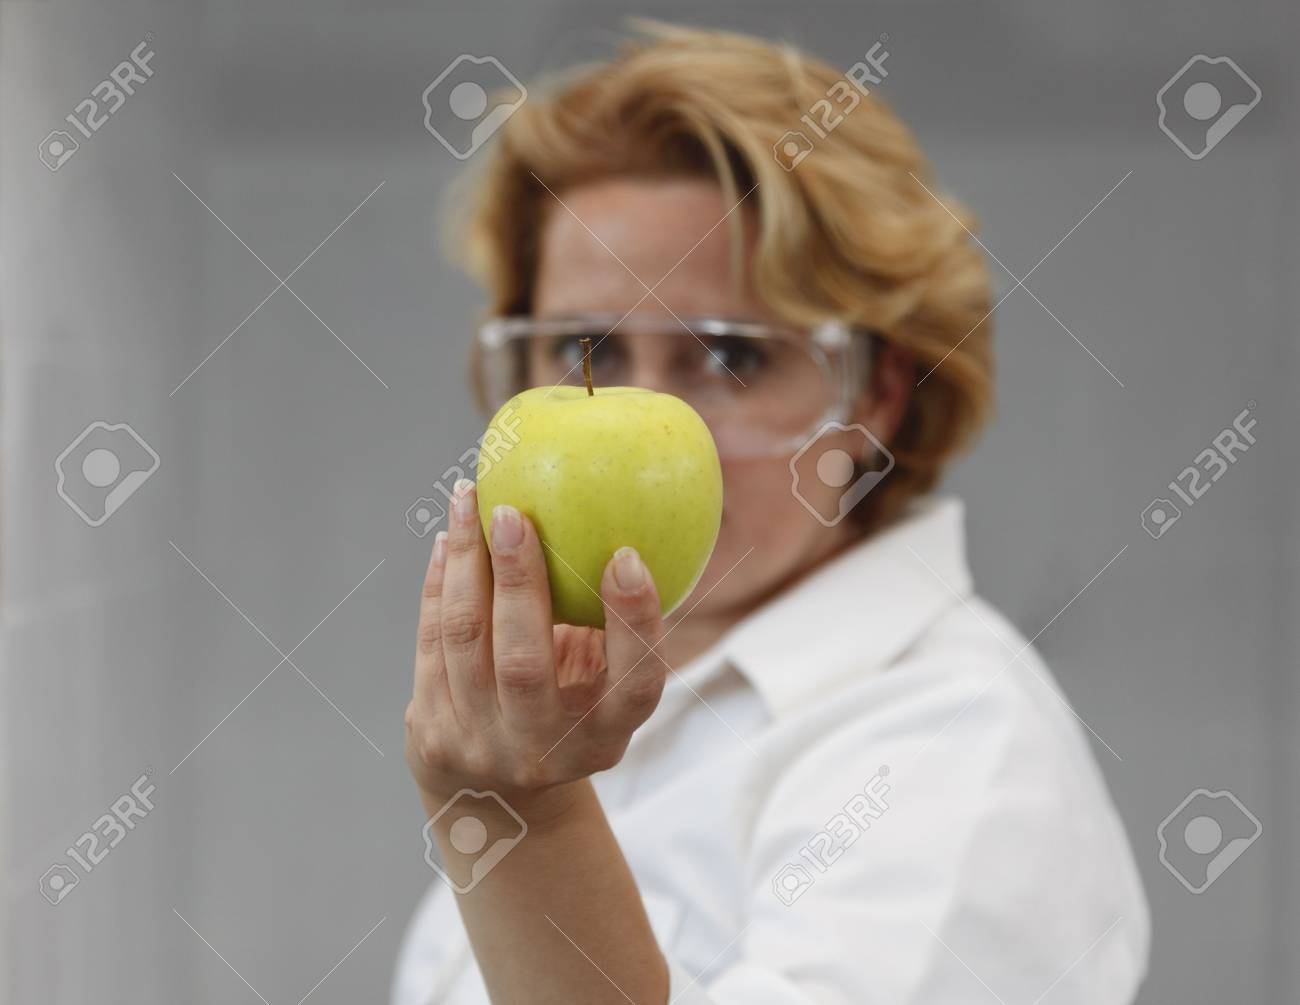 Image of a female researcher offering a tomato and an apple to suggest the idea that healthy eating is recommended also by scientists.Specific lighting for a classical research laboratory. Stock Photo - 6400711